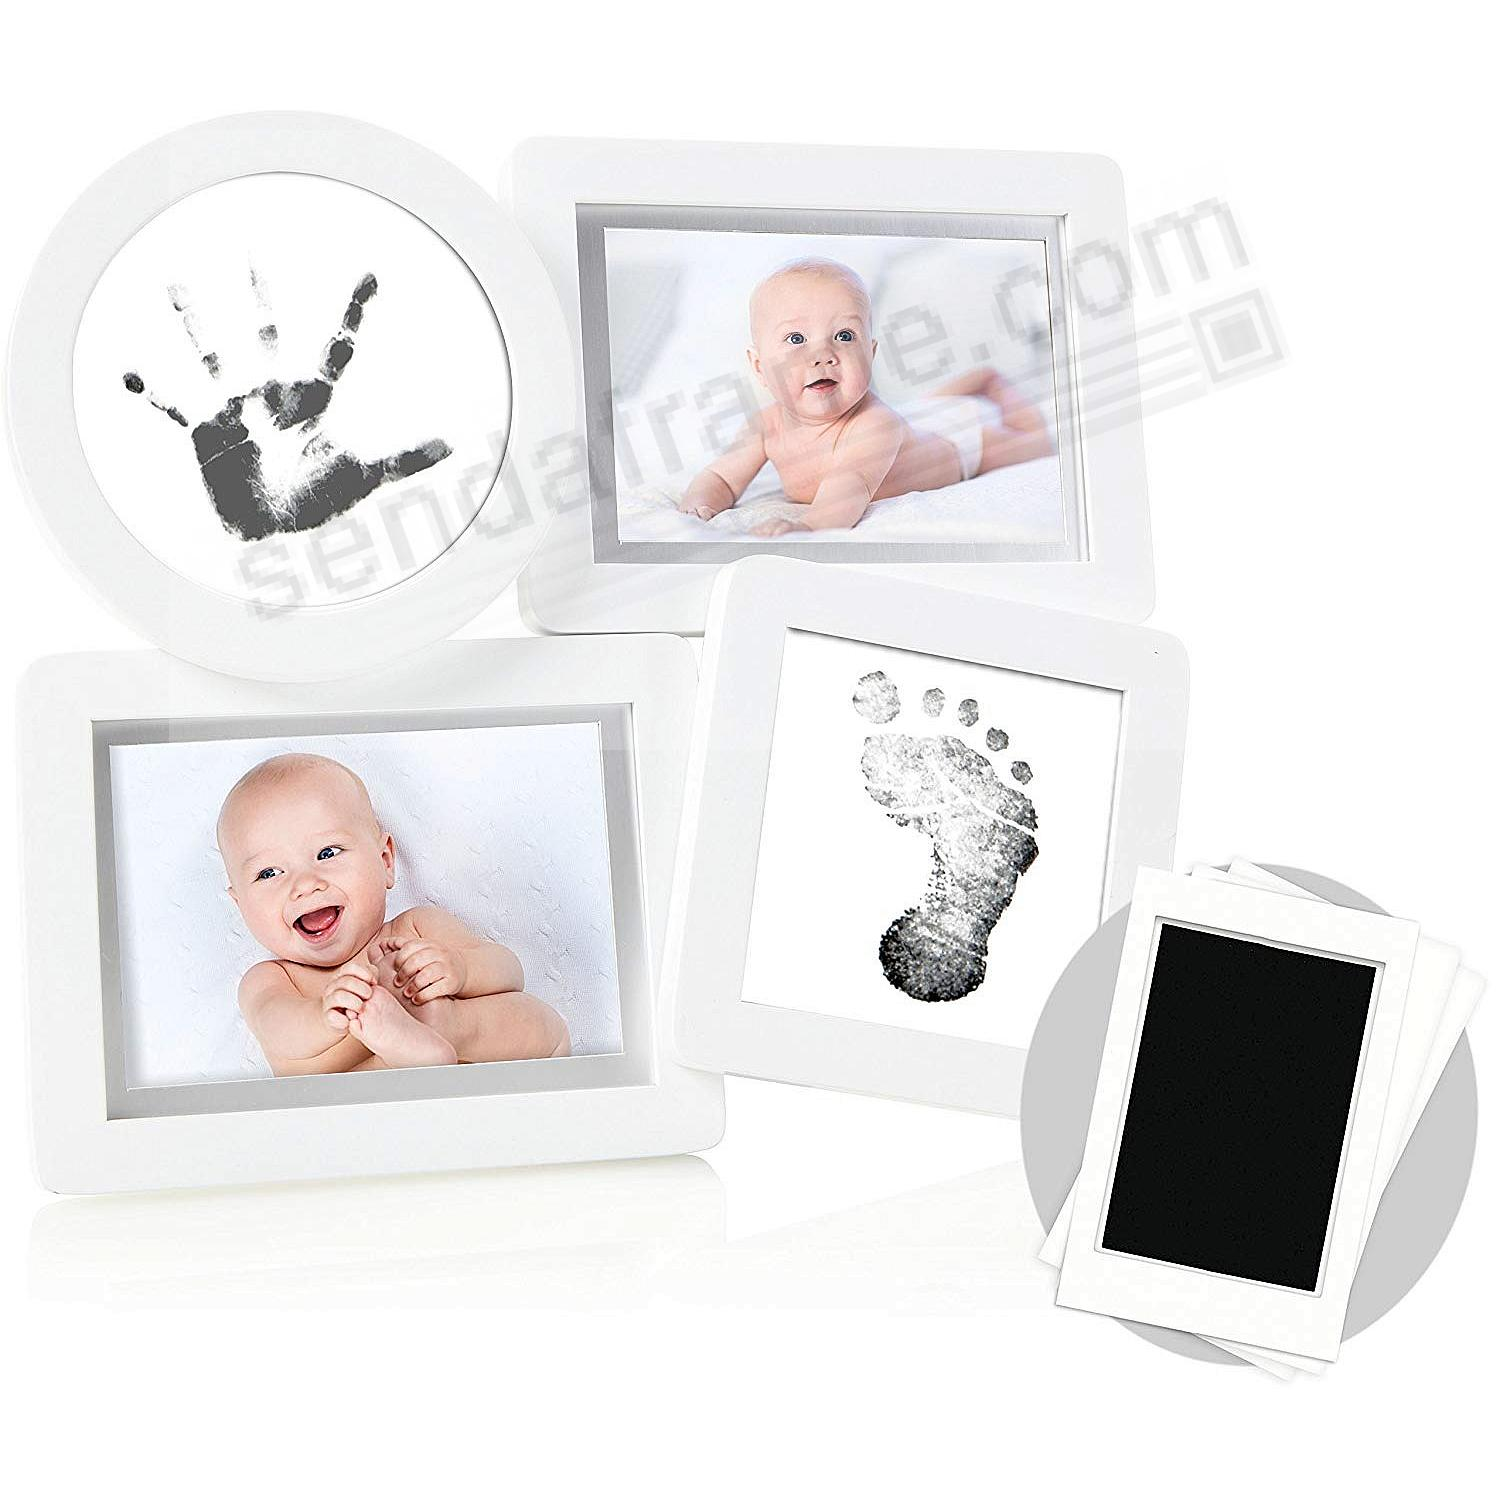 The BABYPRINTS White Collage Frame - Picture Frames, Photo Albums ...